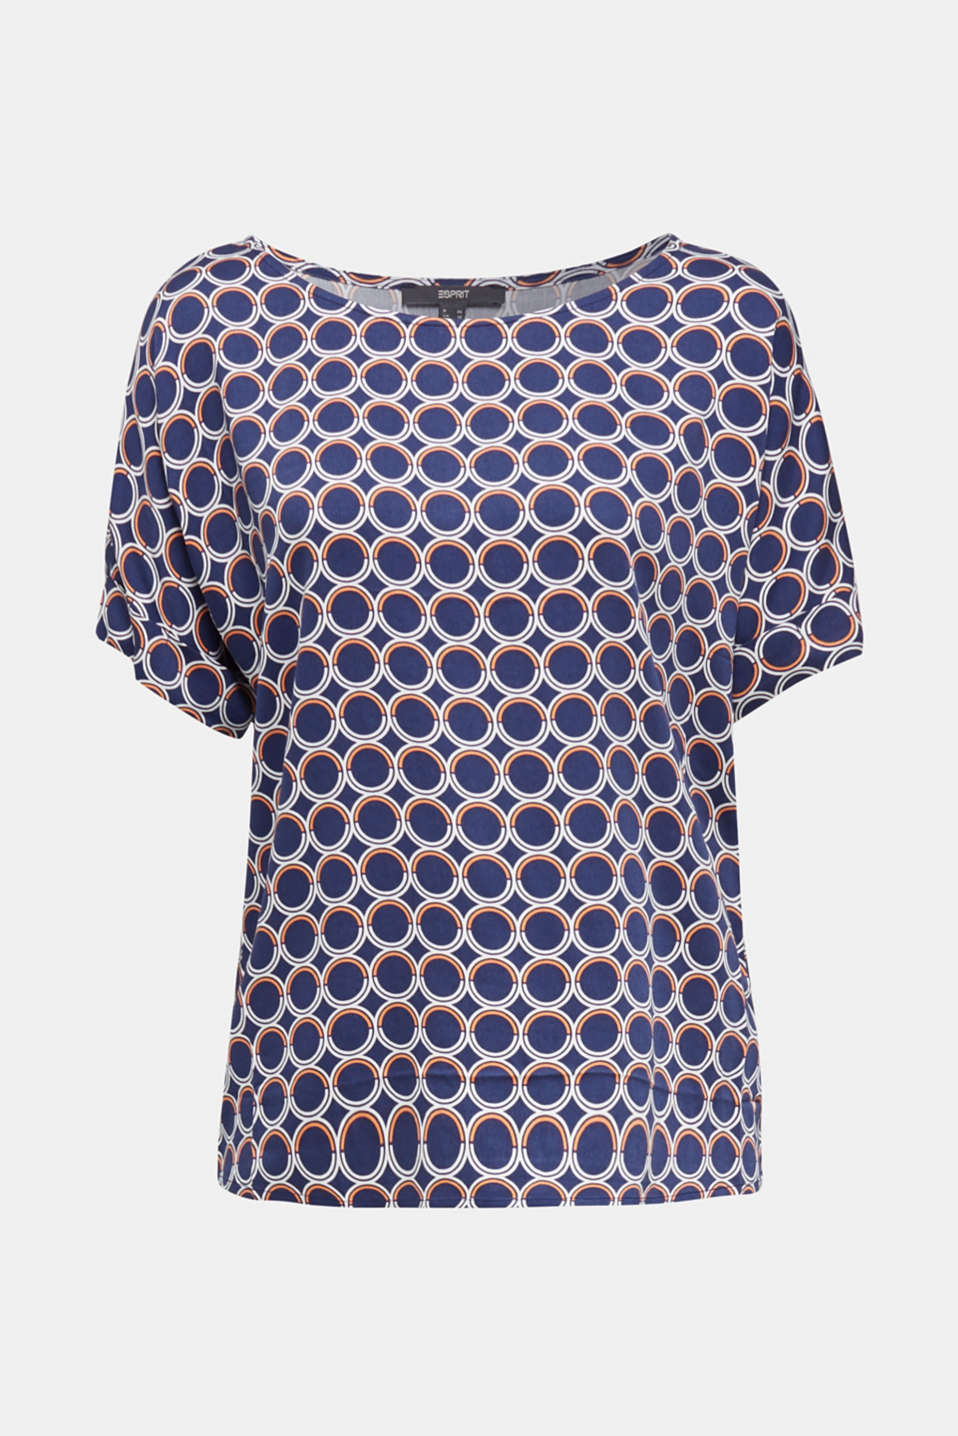 Blouse top with a graphic print, NAVY 3, detail image number 8